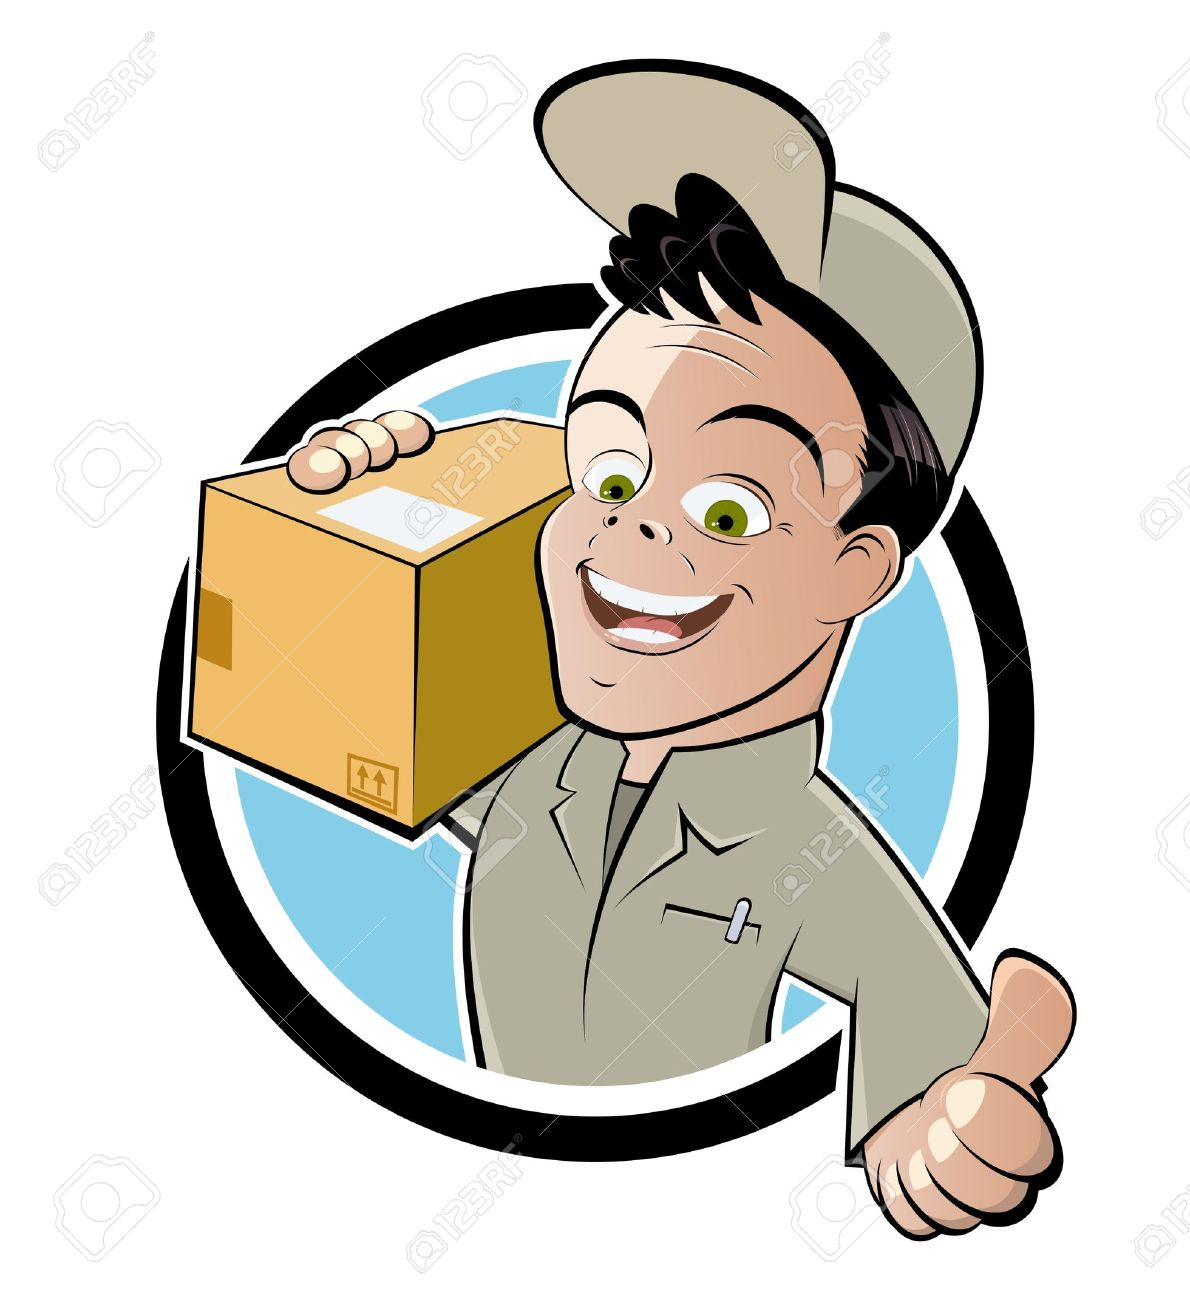 Parcel service clipart 20 free Cliparts | Download images ...Ups Delivery Truck Clipart